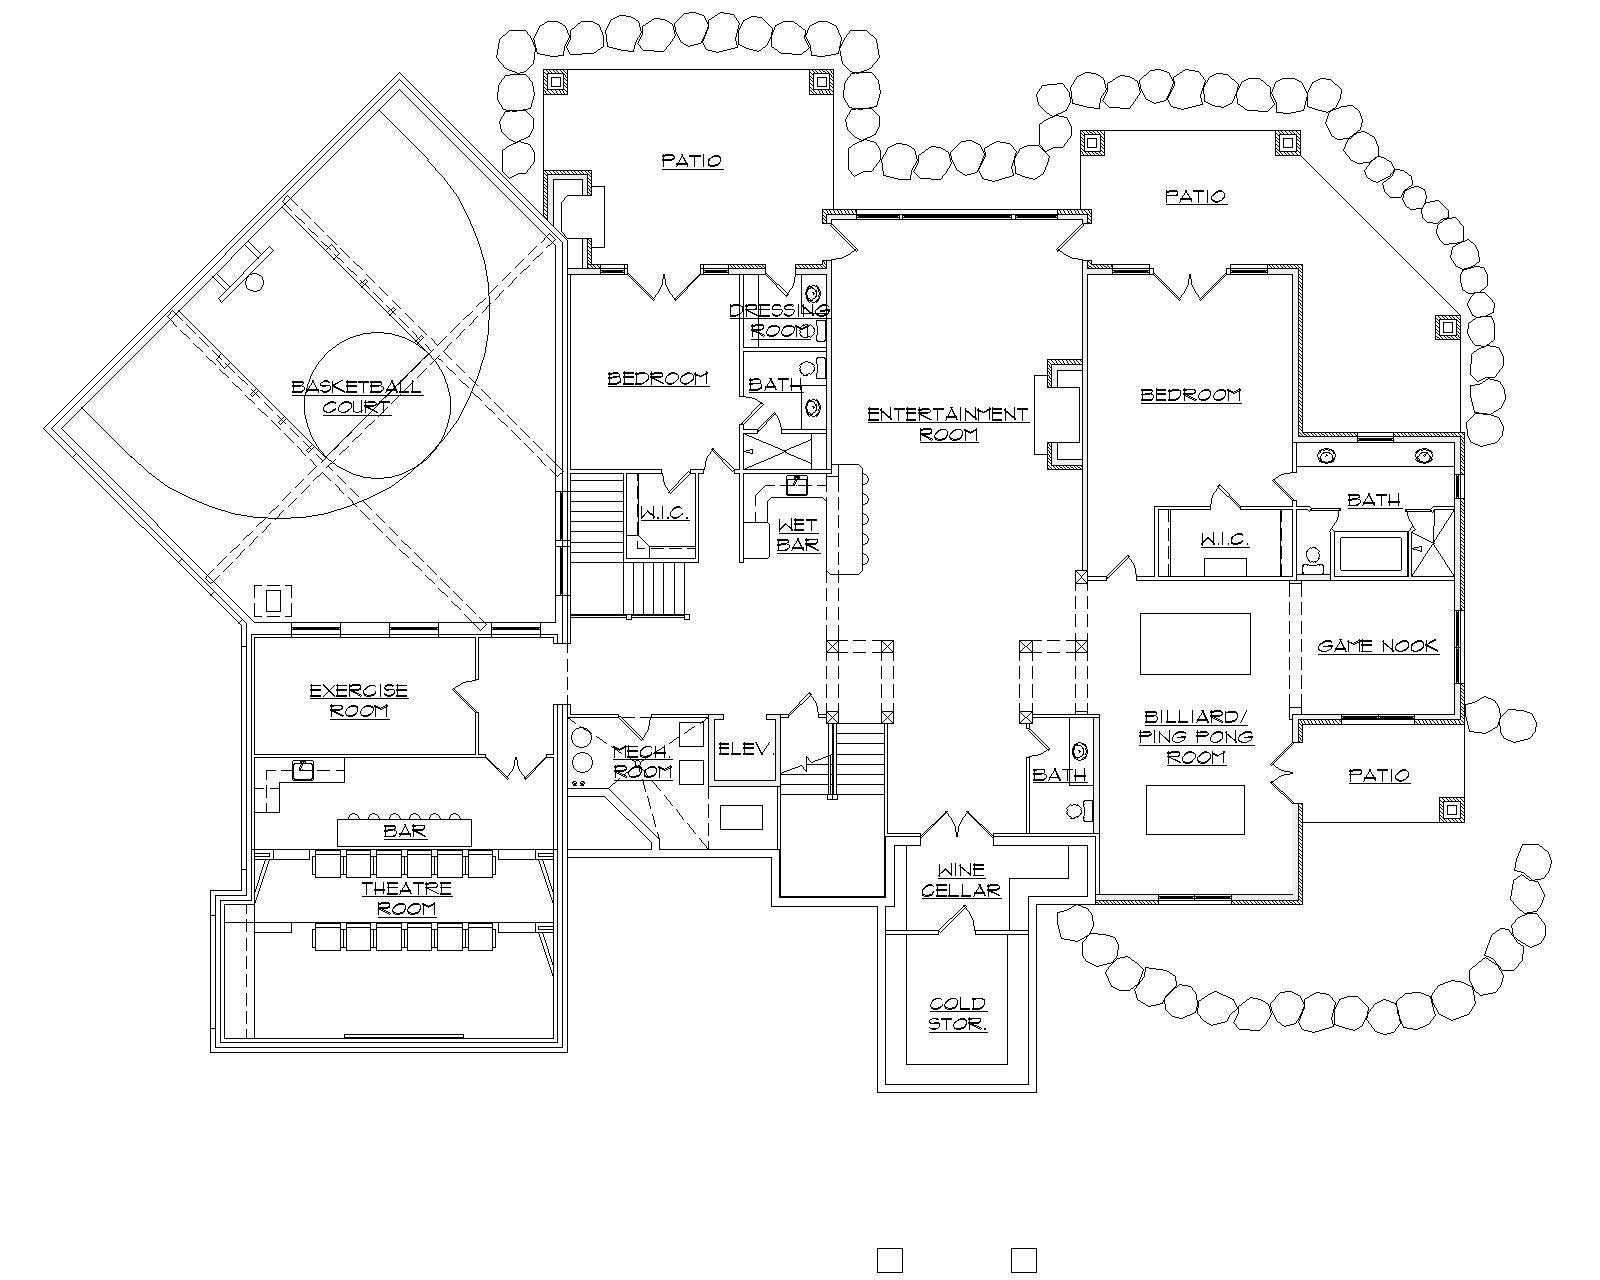 Luxury basement floor plan boasting theater room, basketball court, and billiards room.